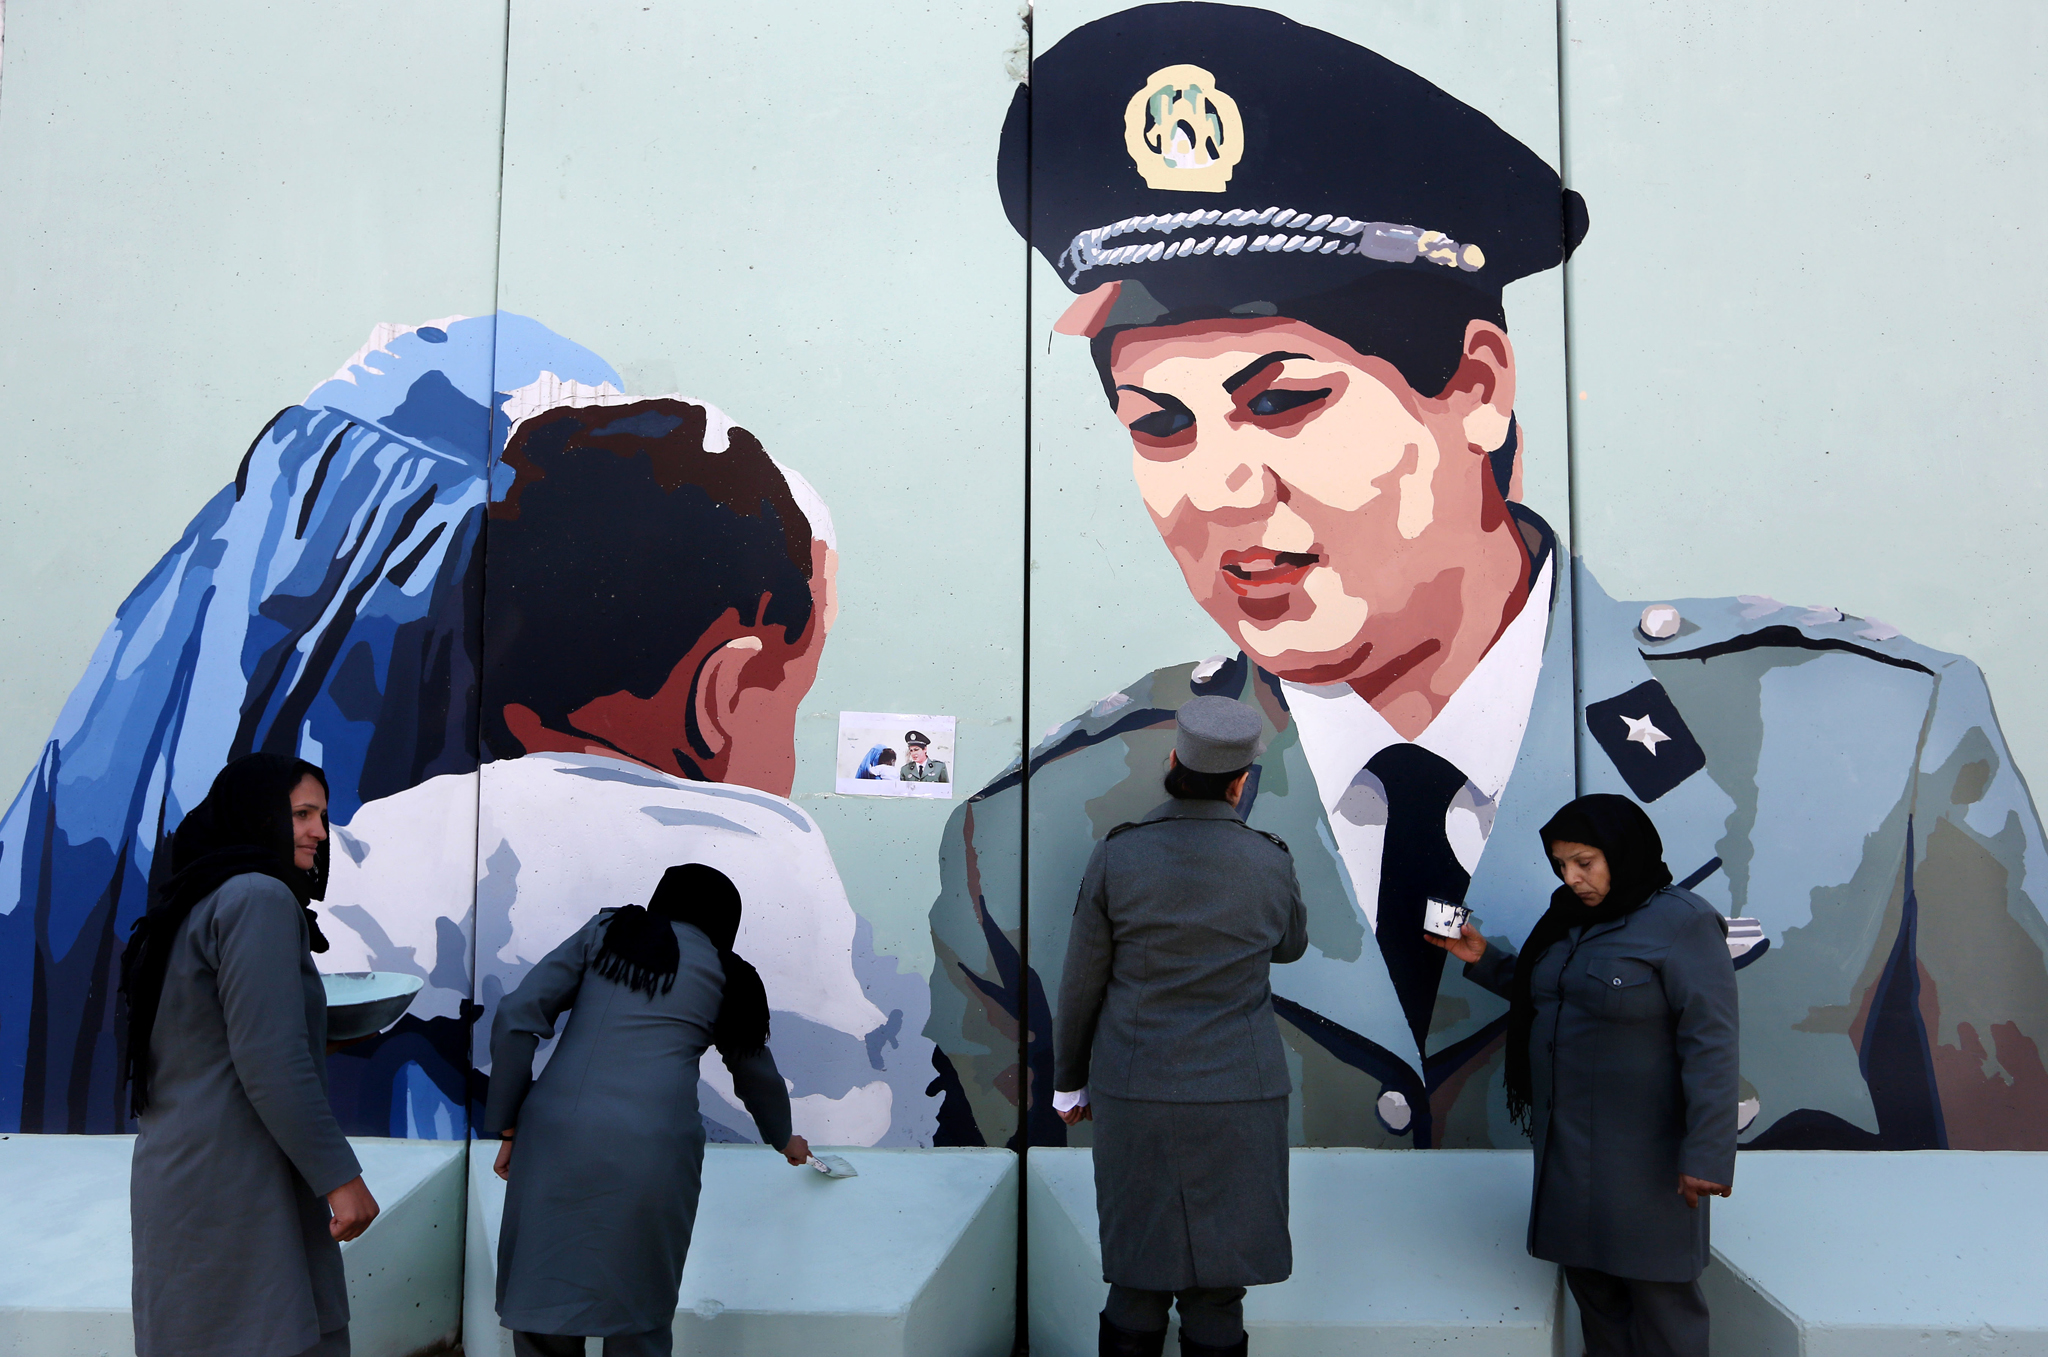 Friba Hameed, 30, an Afghan police officer, second right, helps paint part of a mural of herself on a wall outside the main gate of a police precinct to mark International Women's Day in Kabul, Afghanistan, Tuesday, March 8, 2016. (AP Photo/Rahmat Gul)